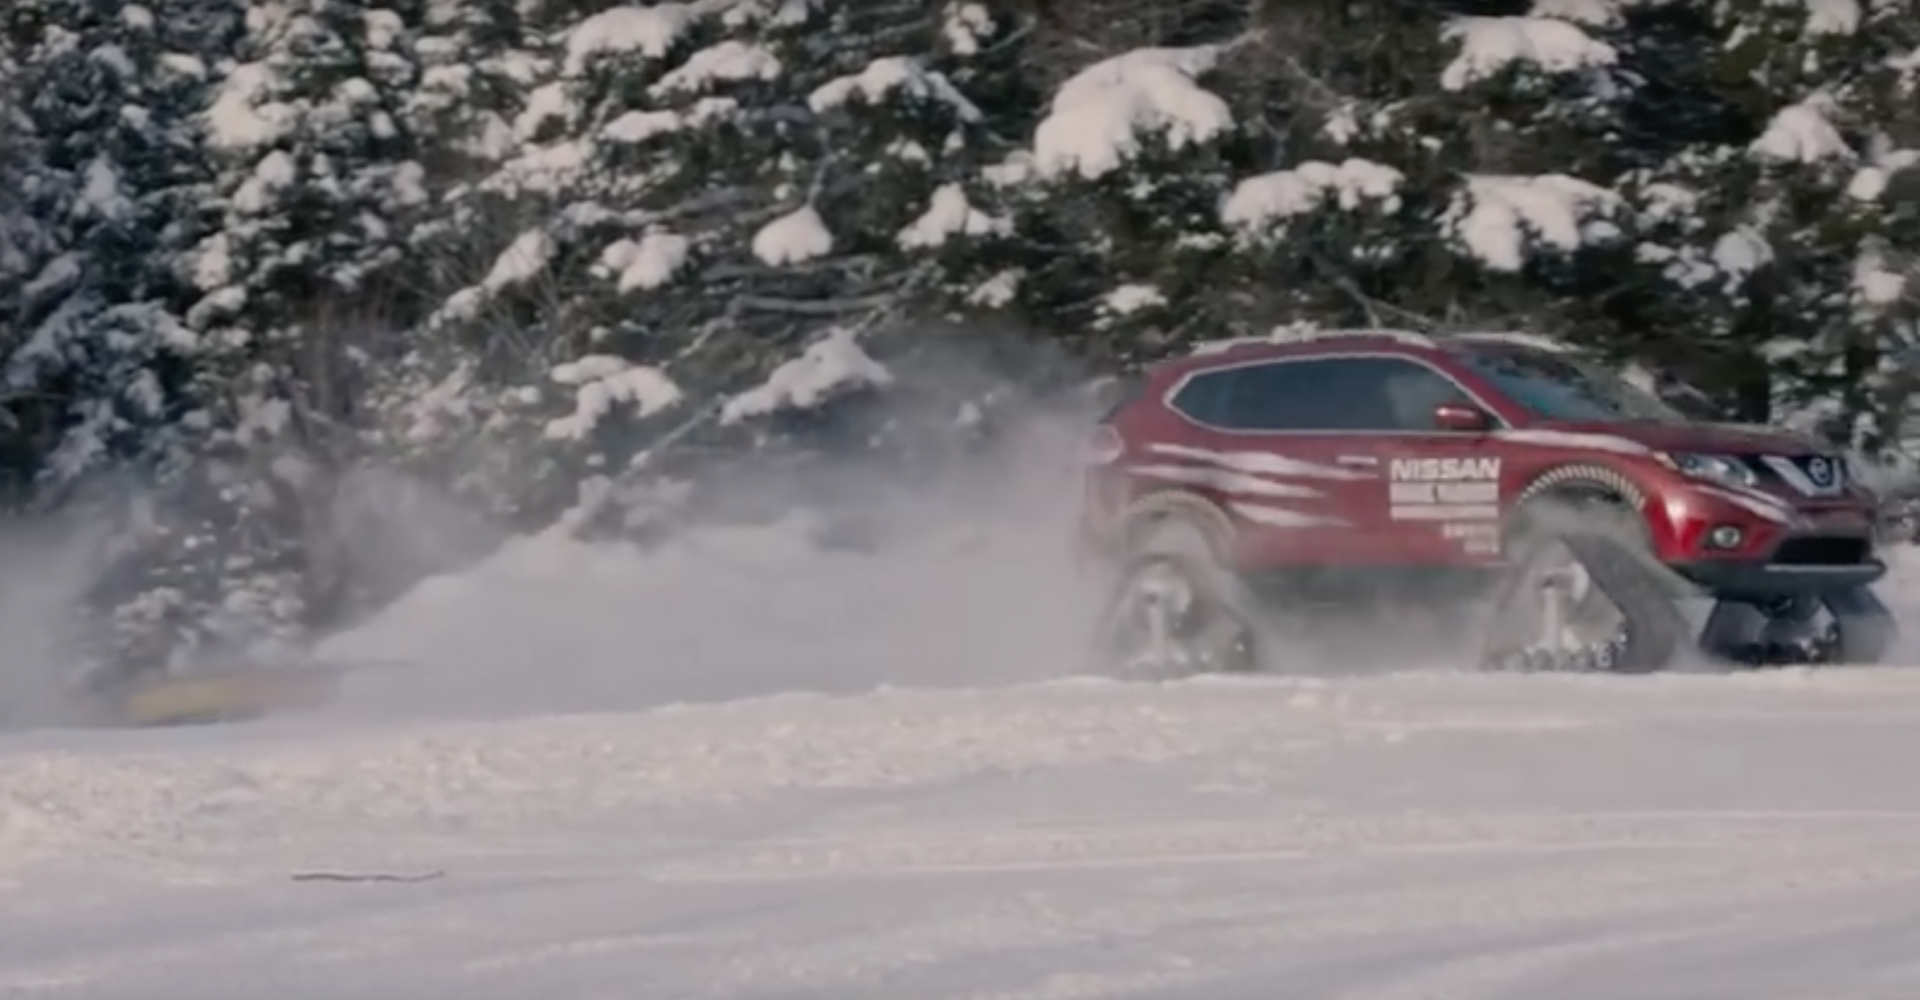 This X-Trail Snowmobile Is All Kinds Of Awesome, Pity It's Just A Prototype